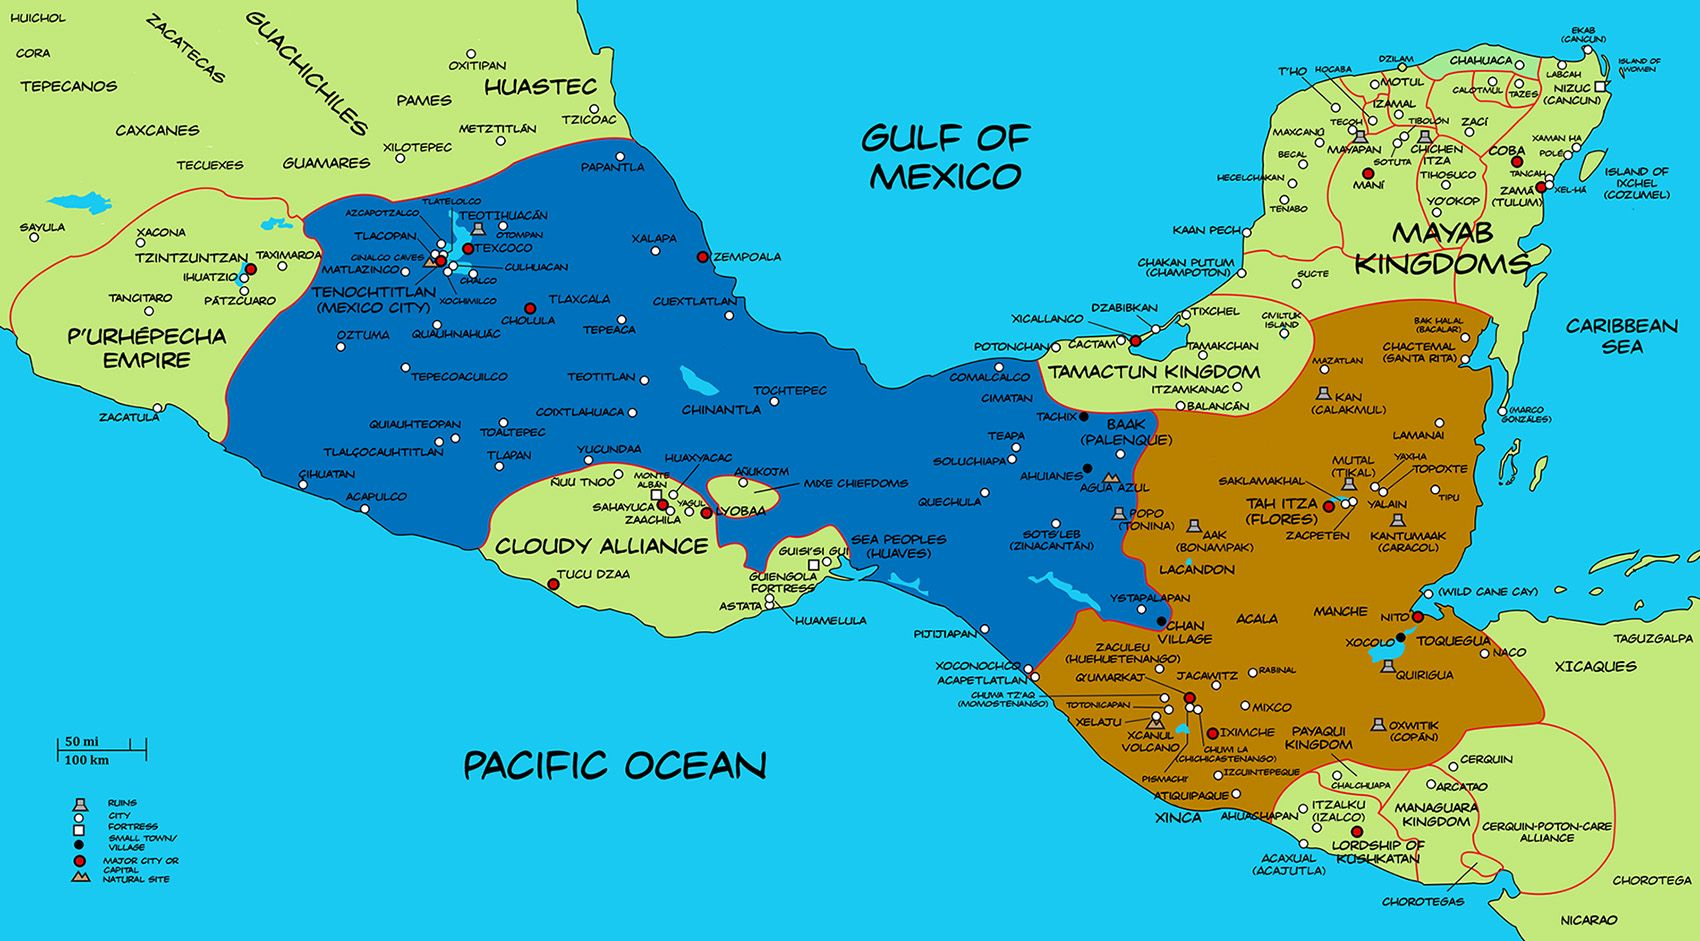 Alternate History Map Of Mesoamerica By Plumed Serpent